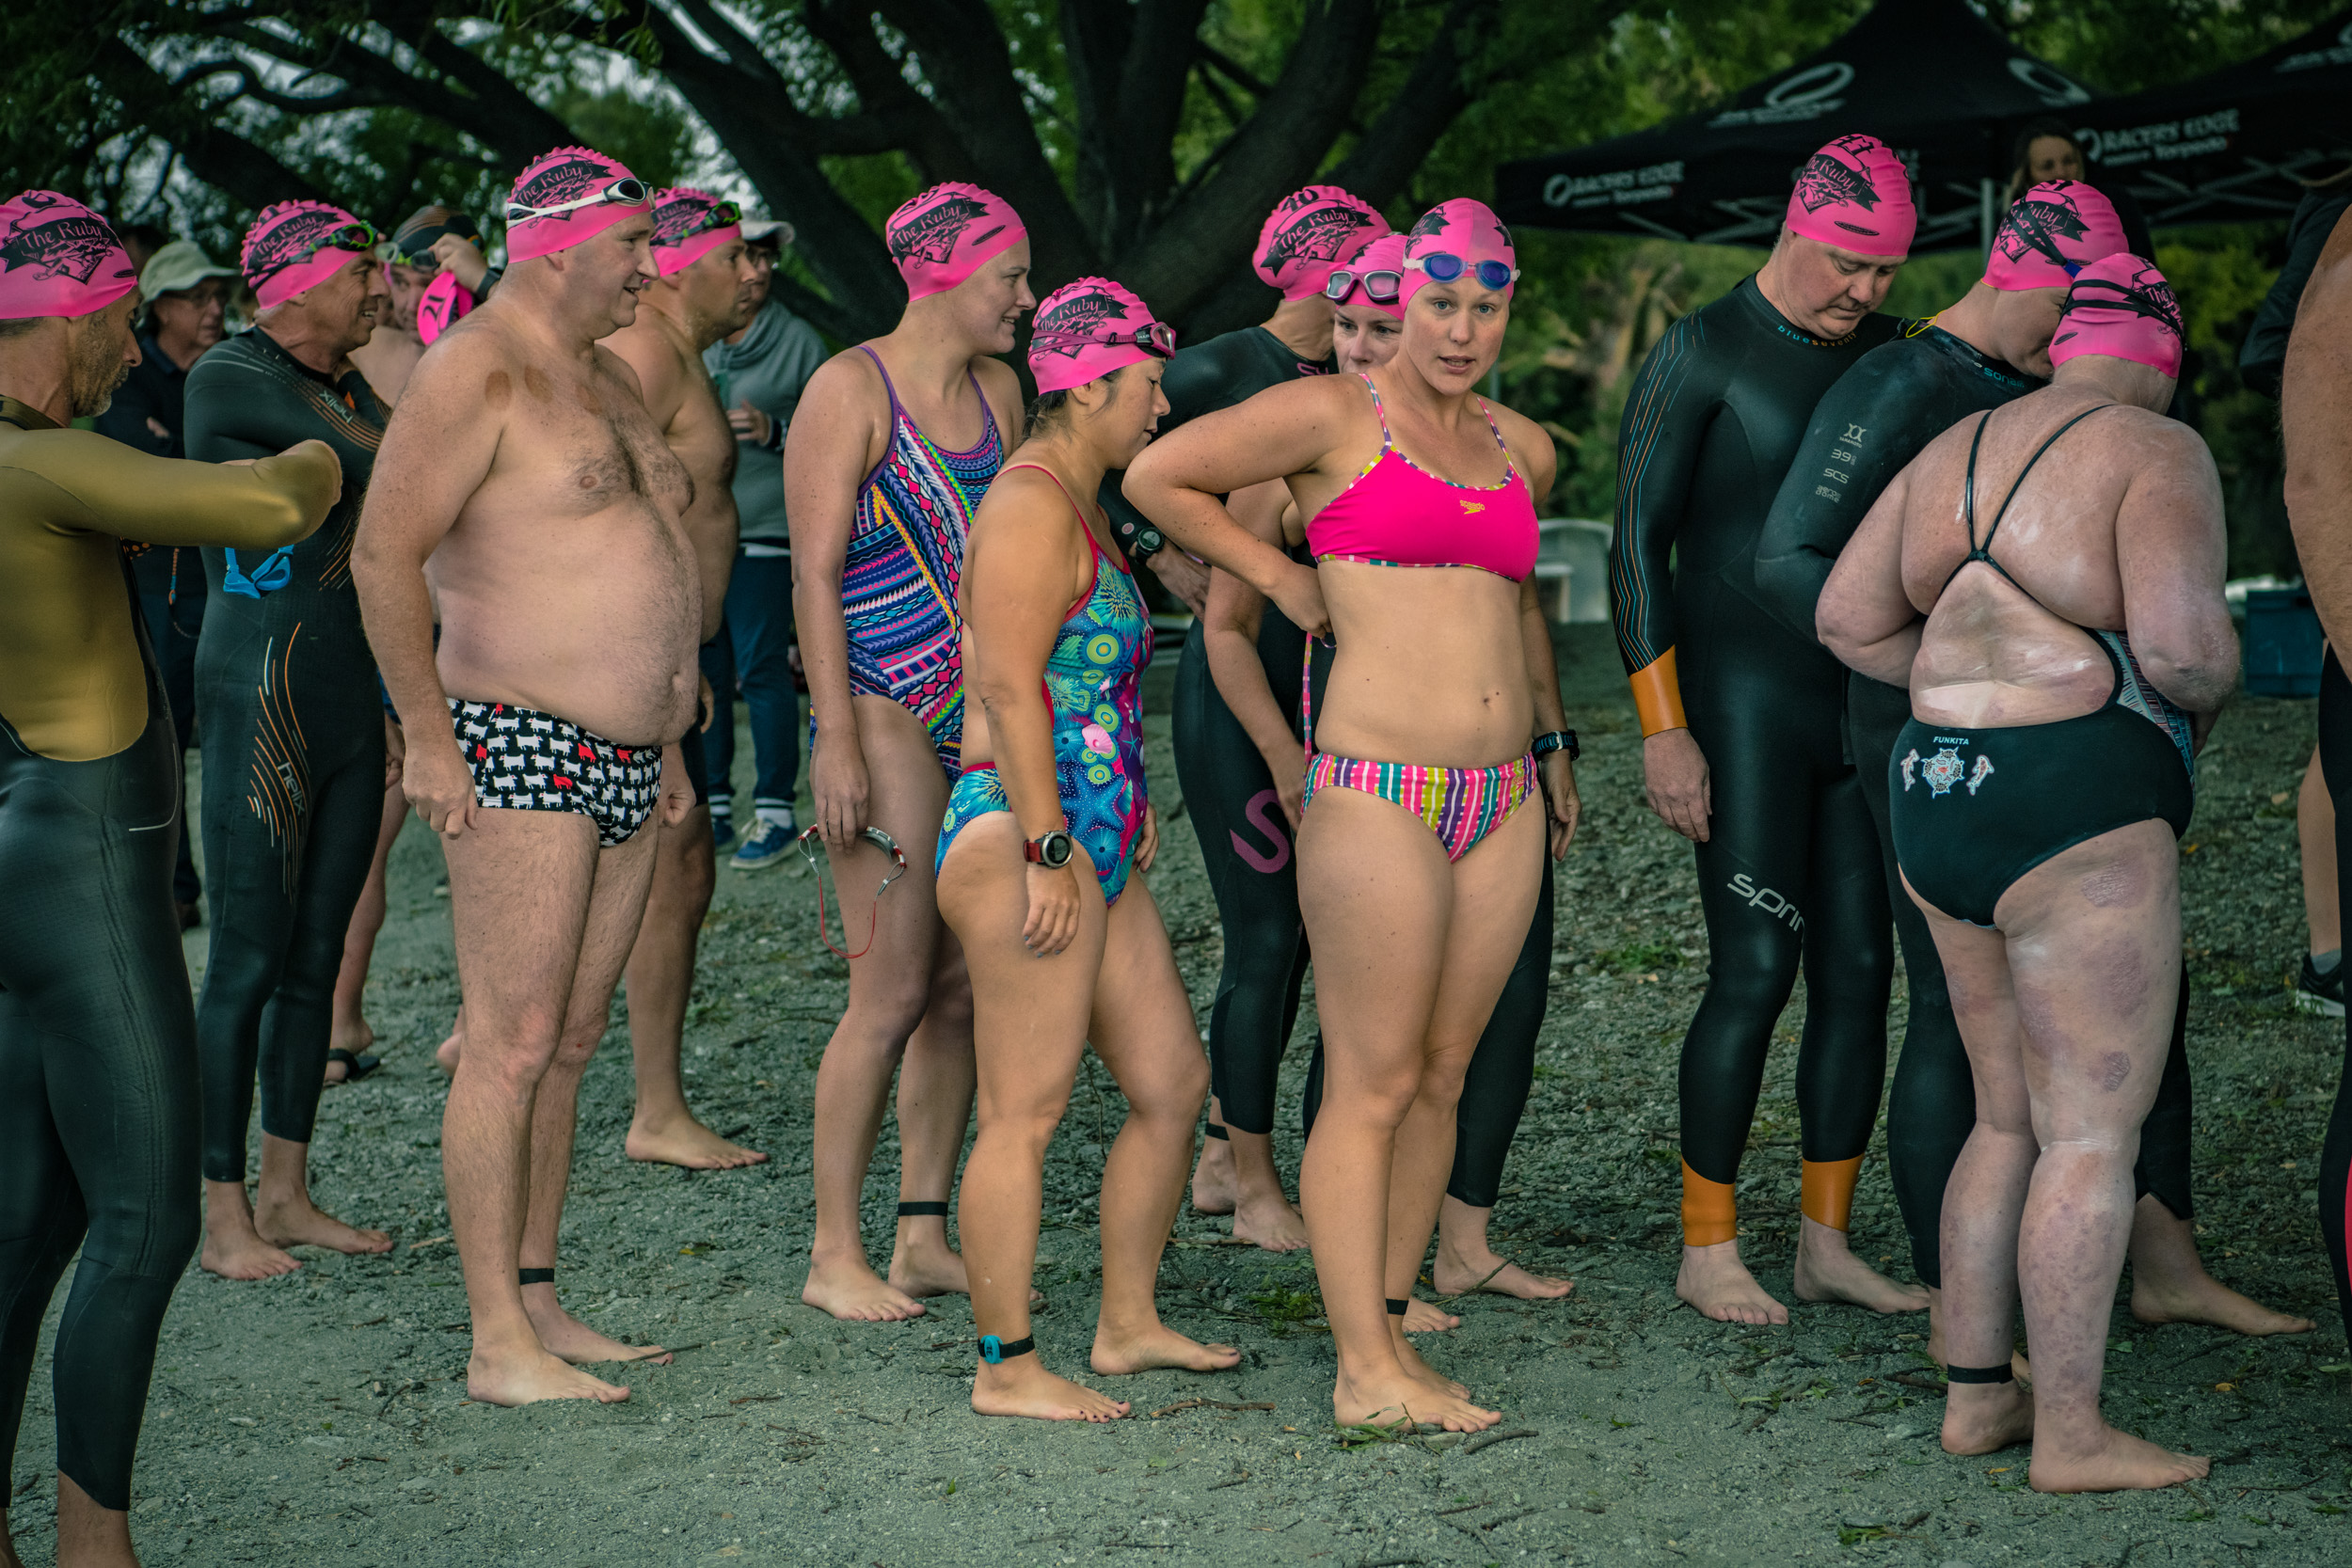 Getting ready to enter the water for The Lake Wanaka Ruby Island Swim